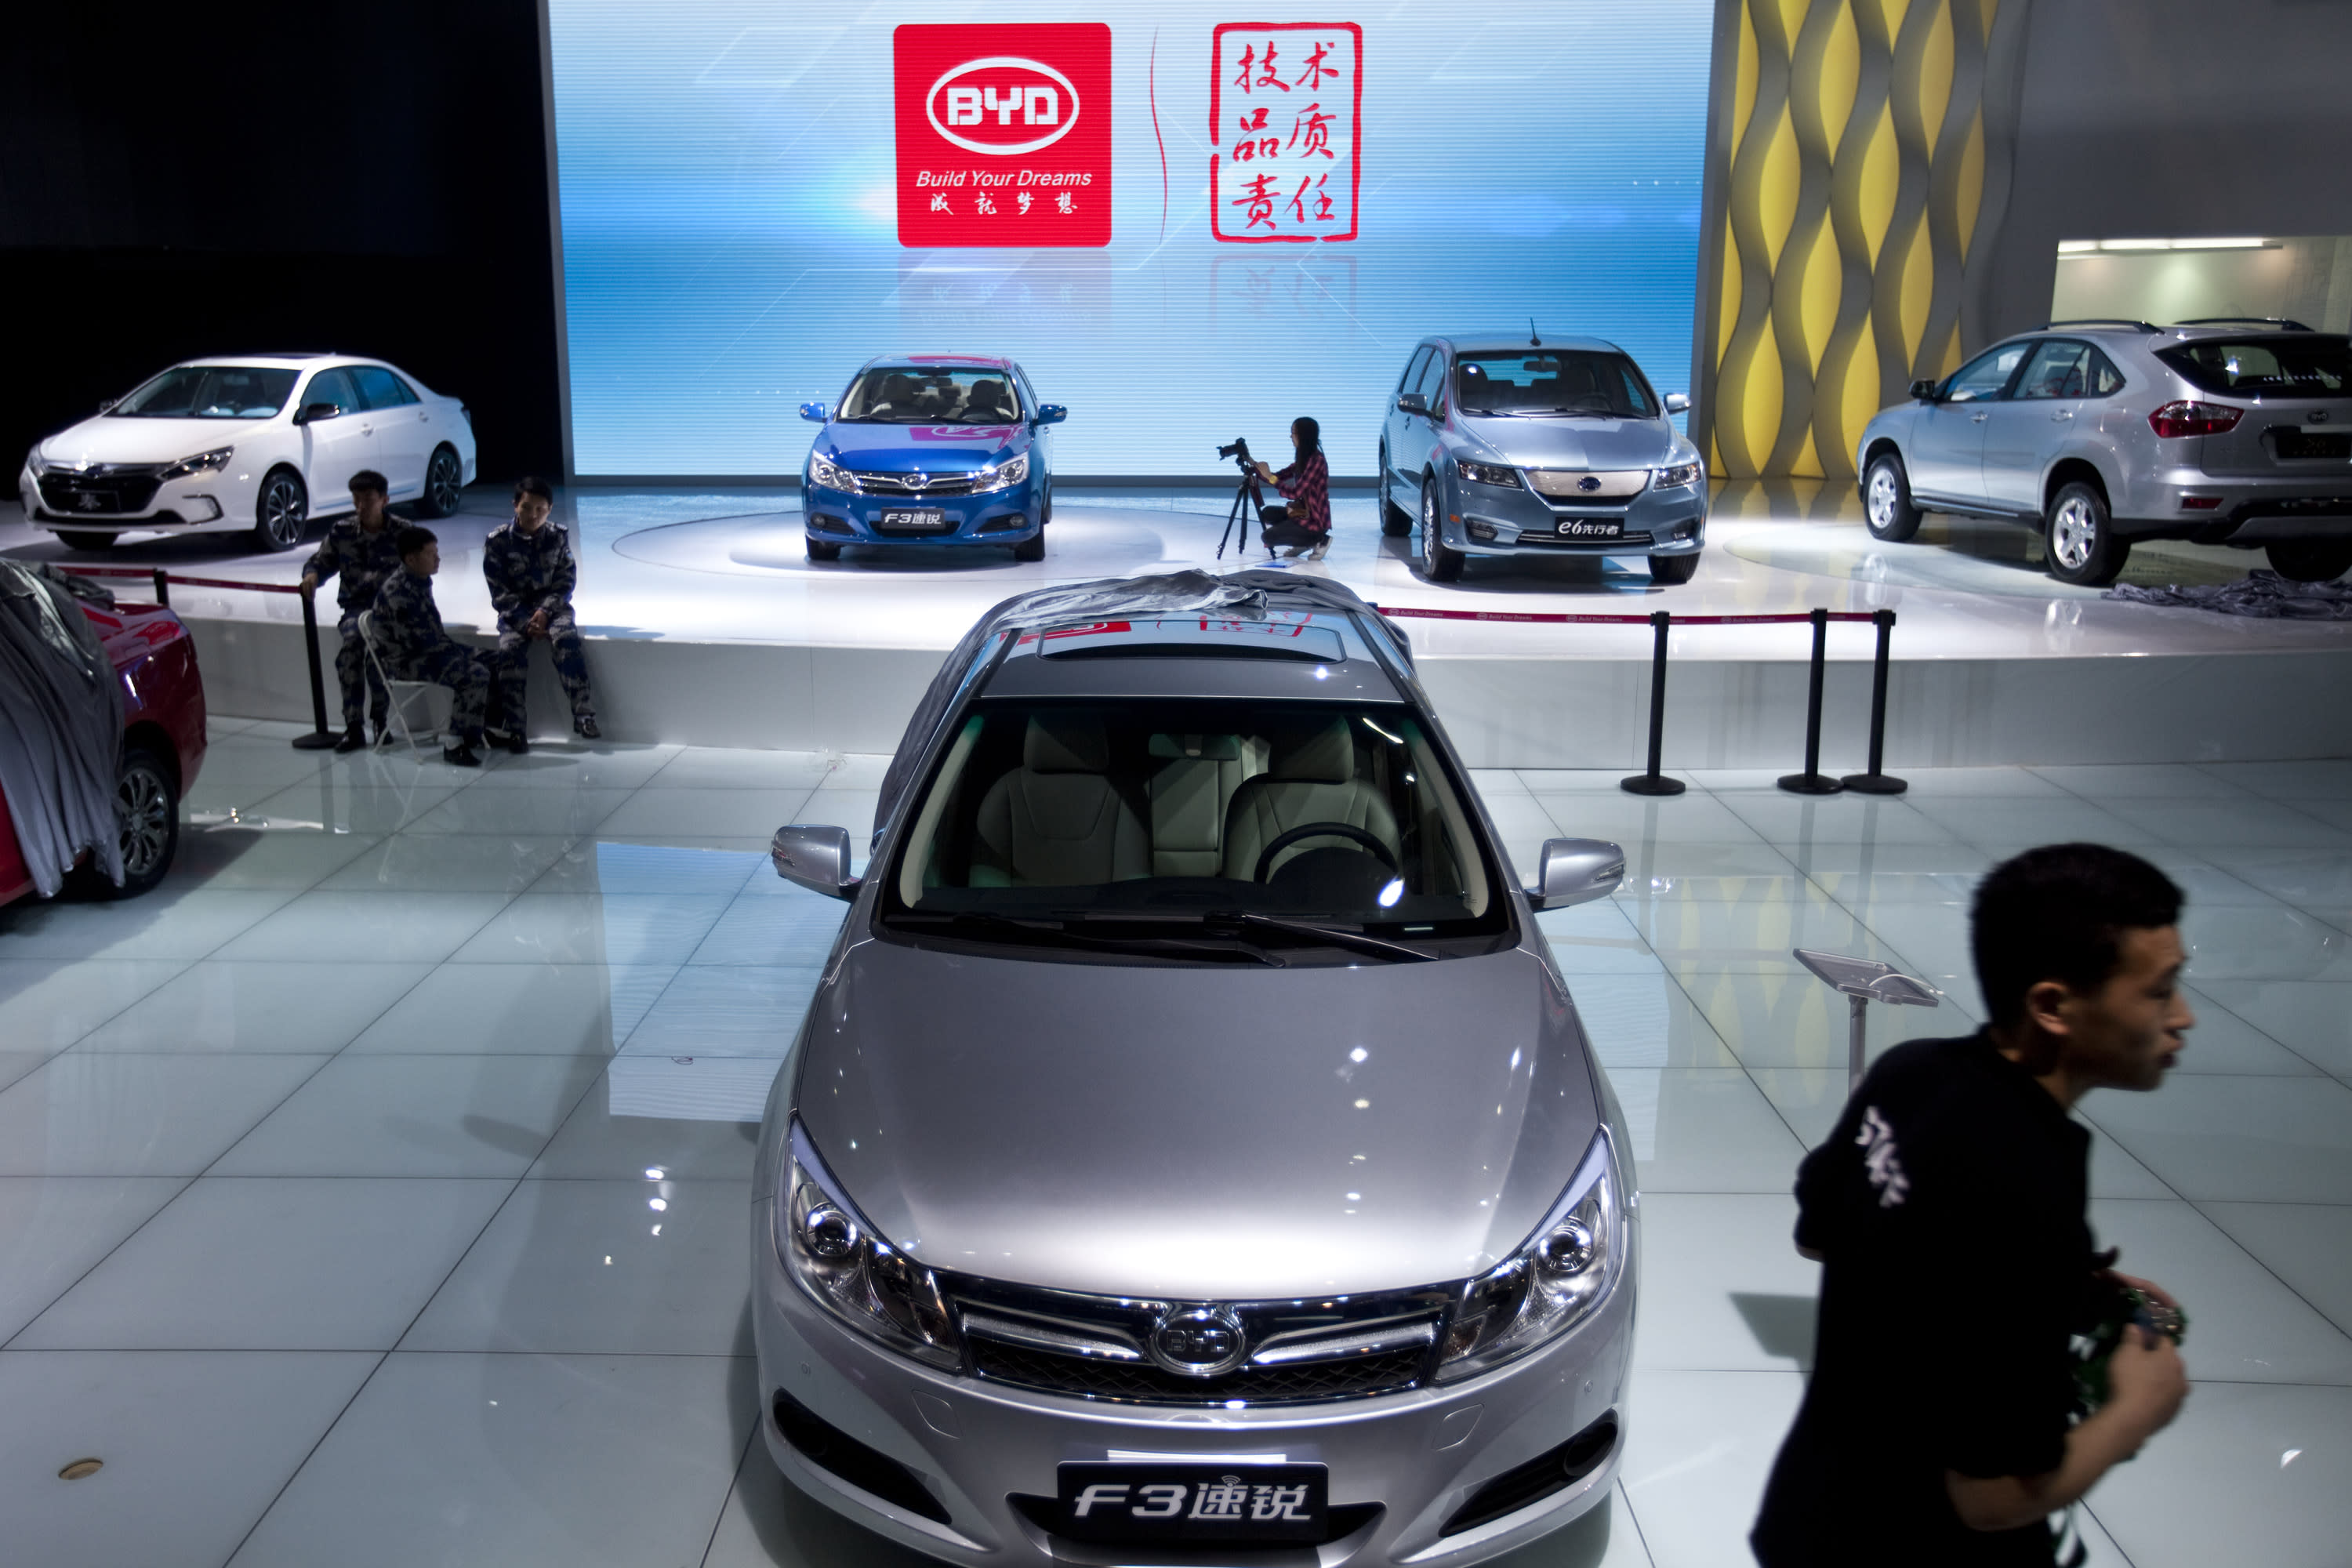 BYD employees wait for visitors next to BYD new cars, at the Beijing International Automotive Exhibition in Beijing, China, Tuesday, April 24, 2012. China's most advanced developer, BYD Co., in which American investor Warren Buffett's Berkshire Hathaway Corp. owns a 10 percent stake, says its electric e6 sedan can travel 300 kilometers (190 miles) on a charge, similar to Western models. (AP Photo/Alexander F. Yuan)